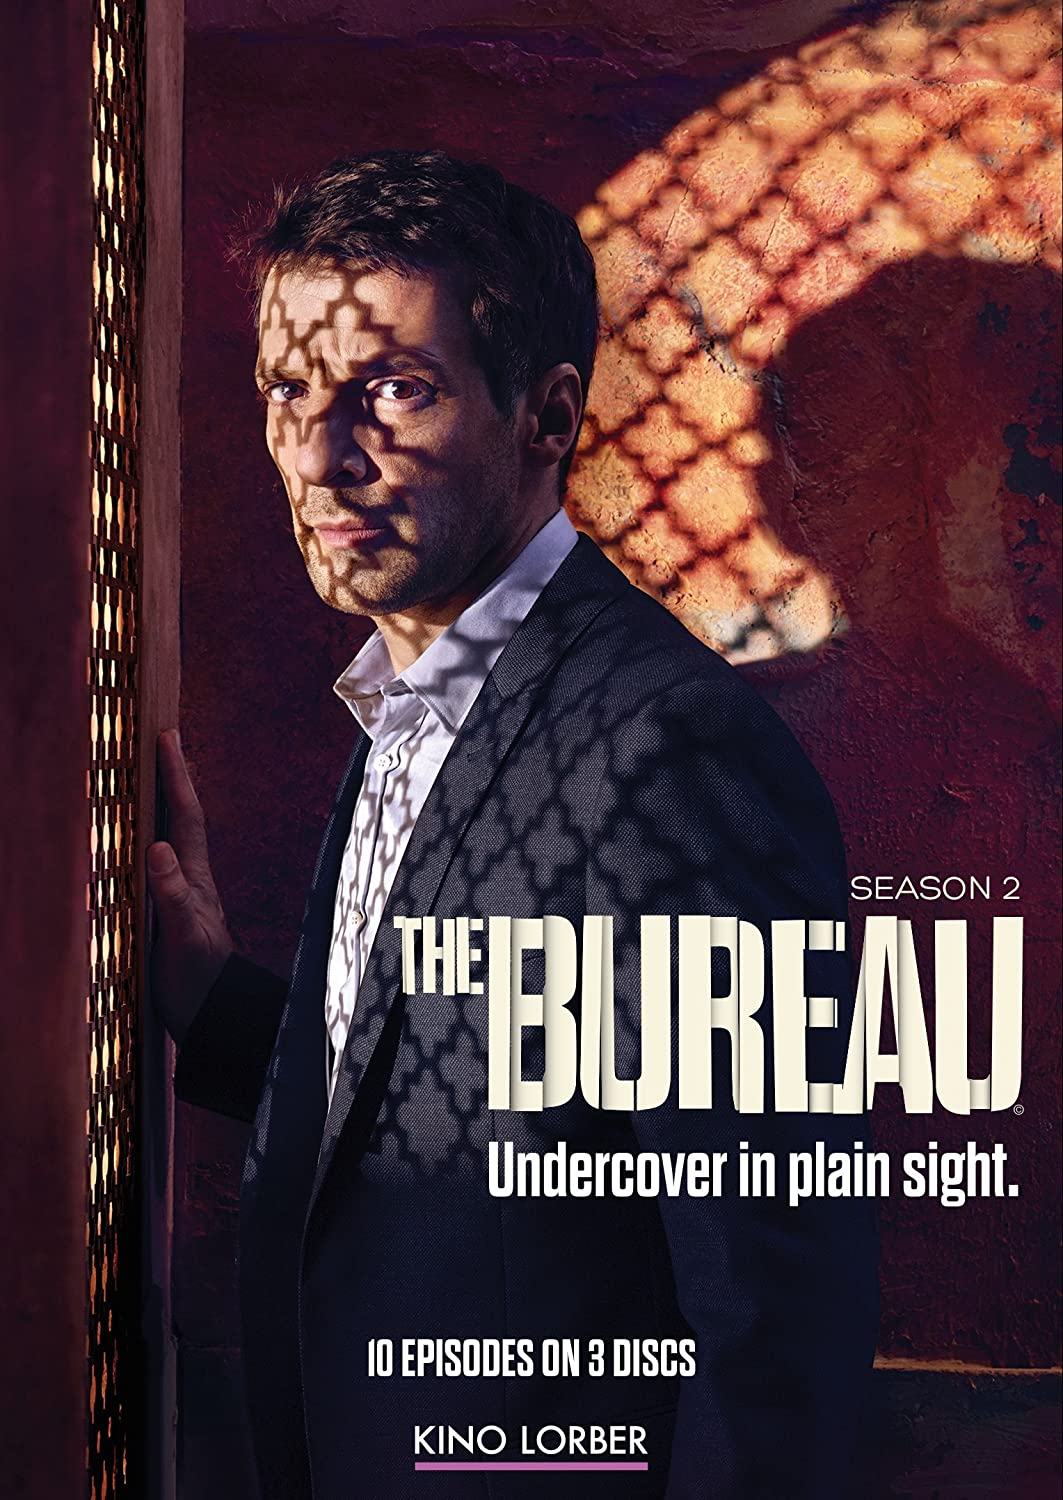 The Bureau: Season 2